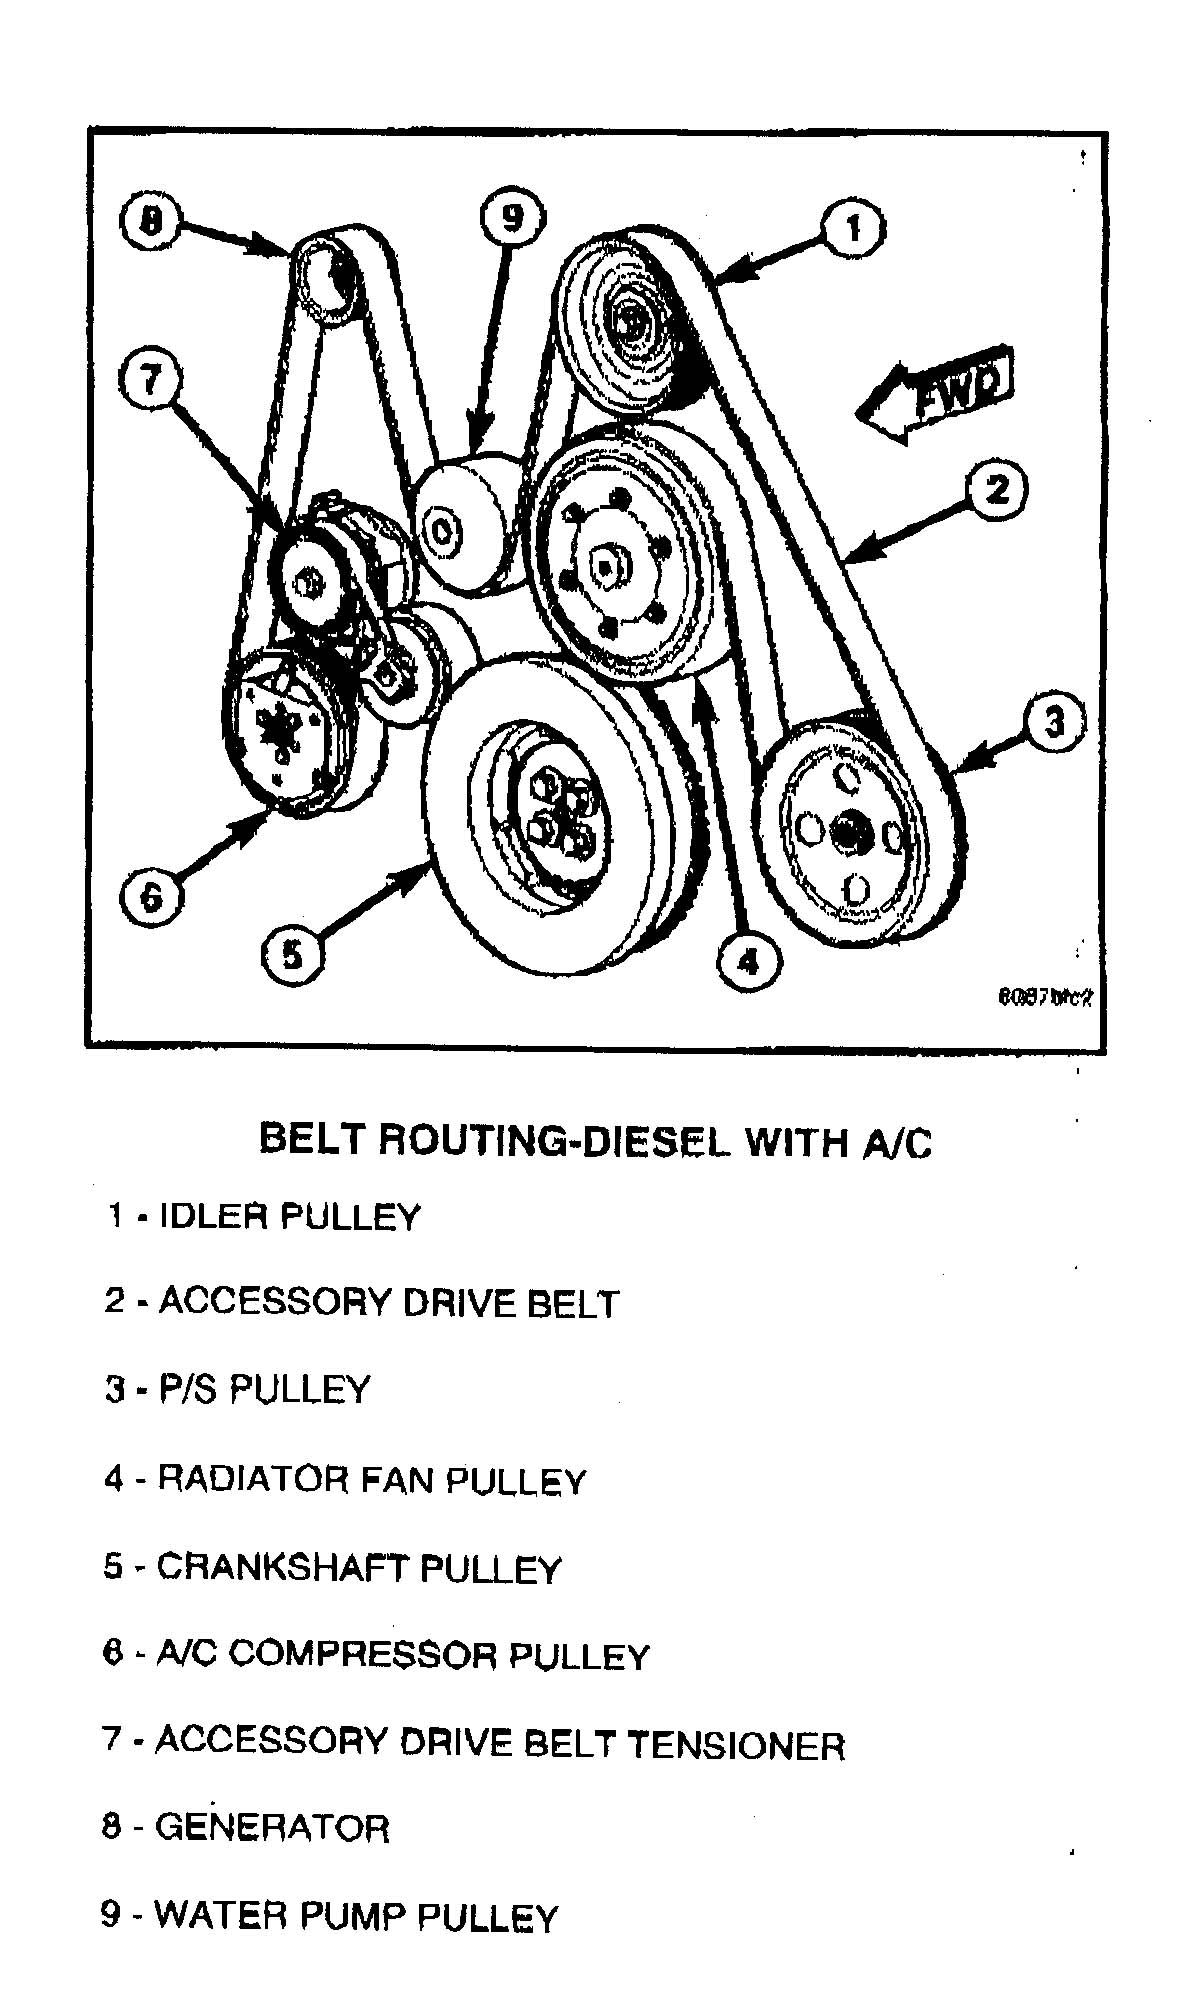 6 7 belt routing diagram dodge diesel diesel truck resource 2008 ford f 250 6 4 belt diagram [ 1197 x 2013 Pixel ]